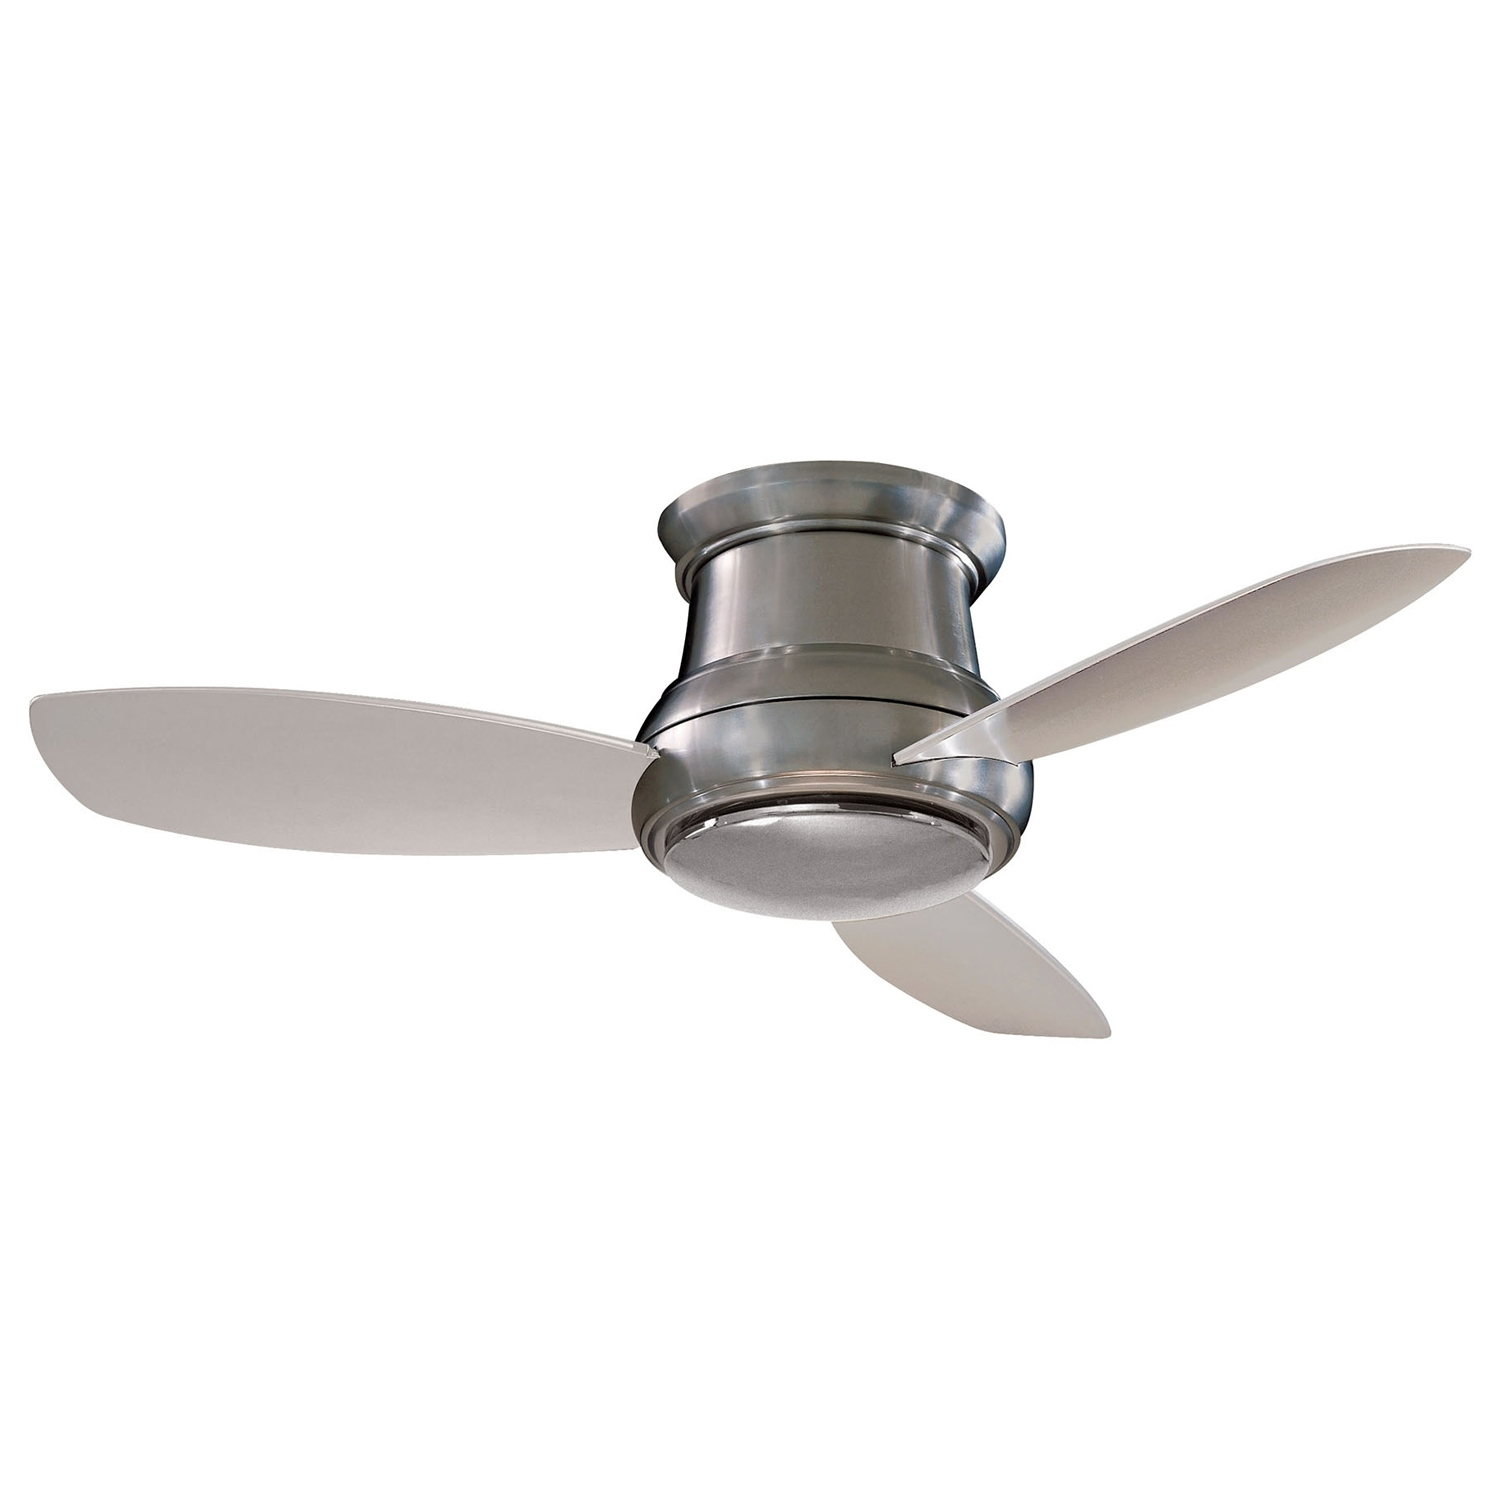 Favorite 36 Inch Outdoor Ceiling Fans Intended For Ceiling Fan: Remarkable 36 Outdoor Ceiling Fan For Home 36 Inch Fans (View 14 of 20)